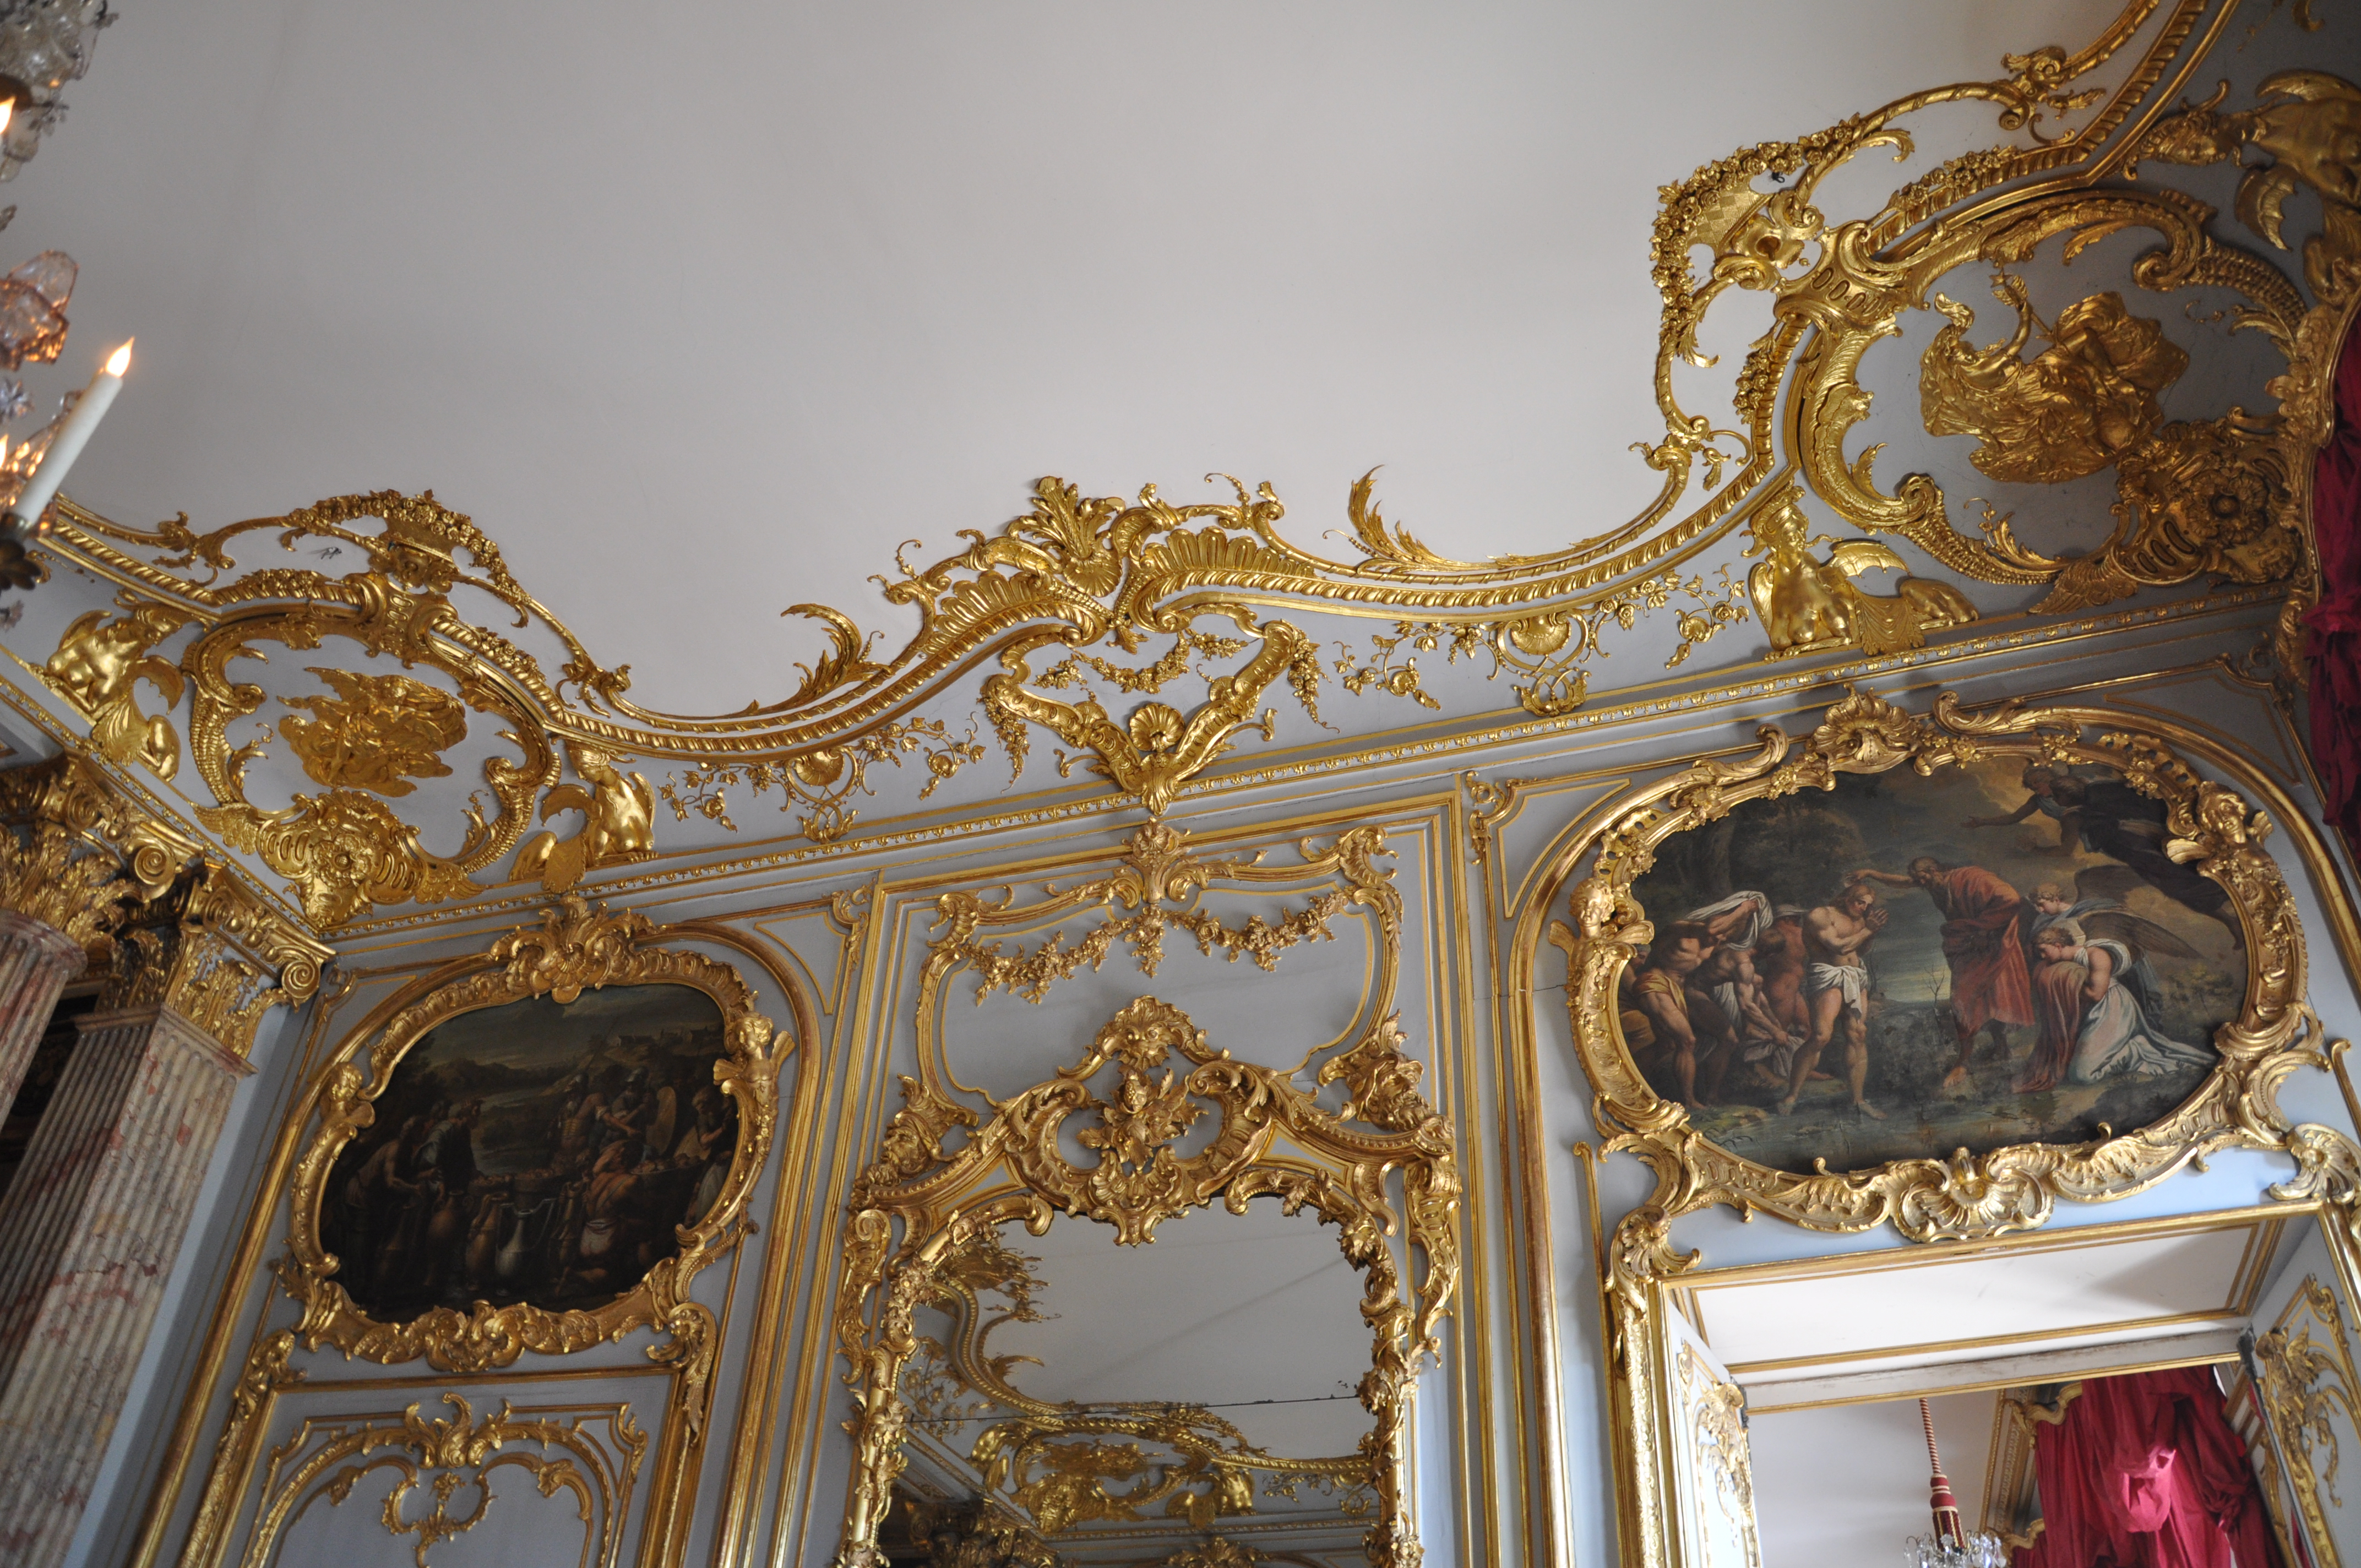 Rococo wikiwand for What is the other name for the rococo style